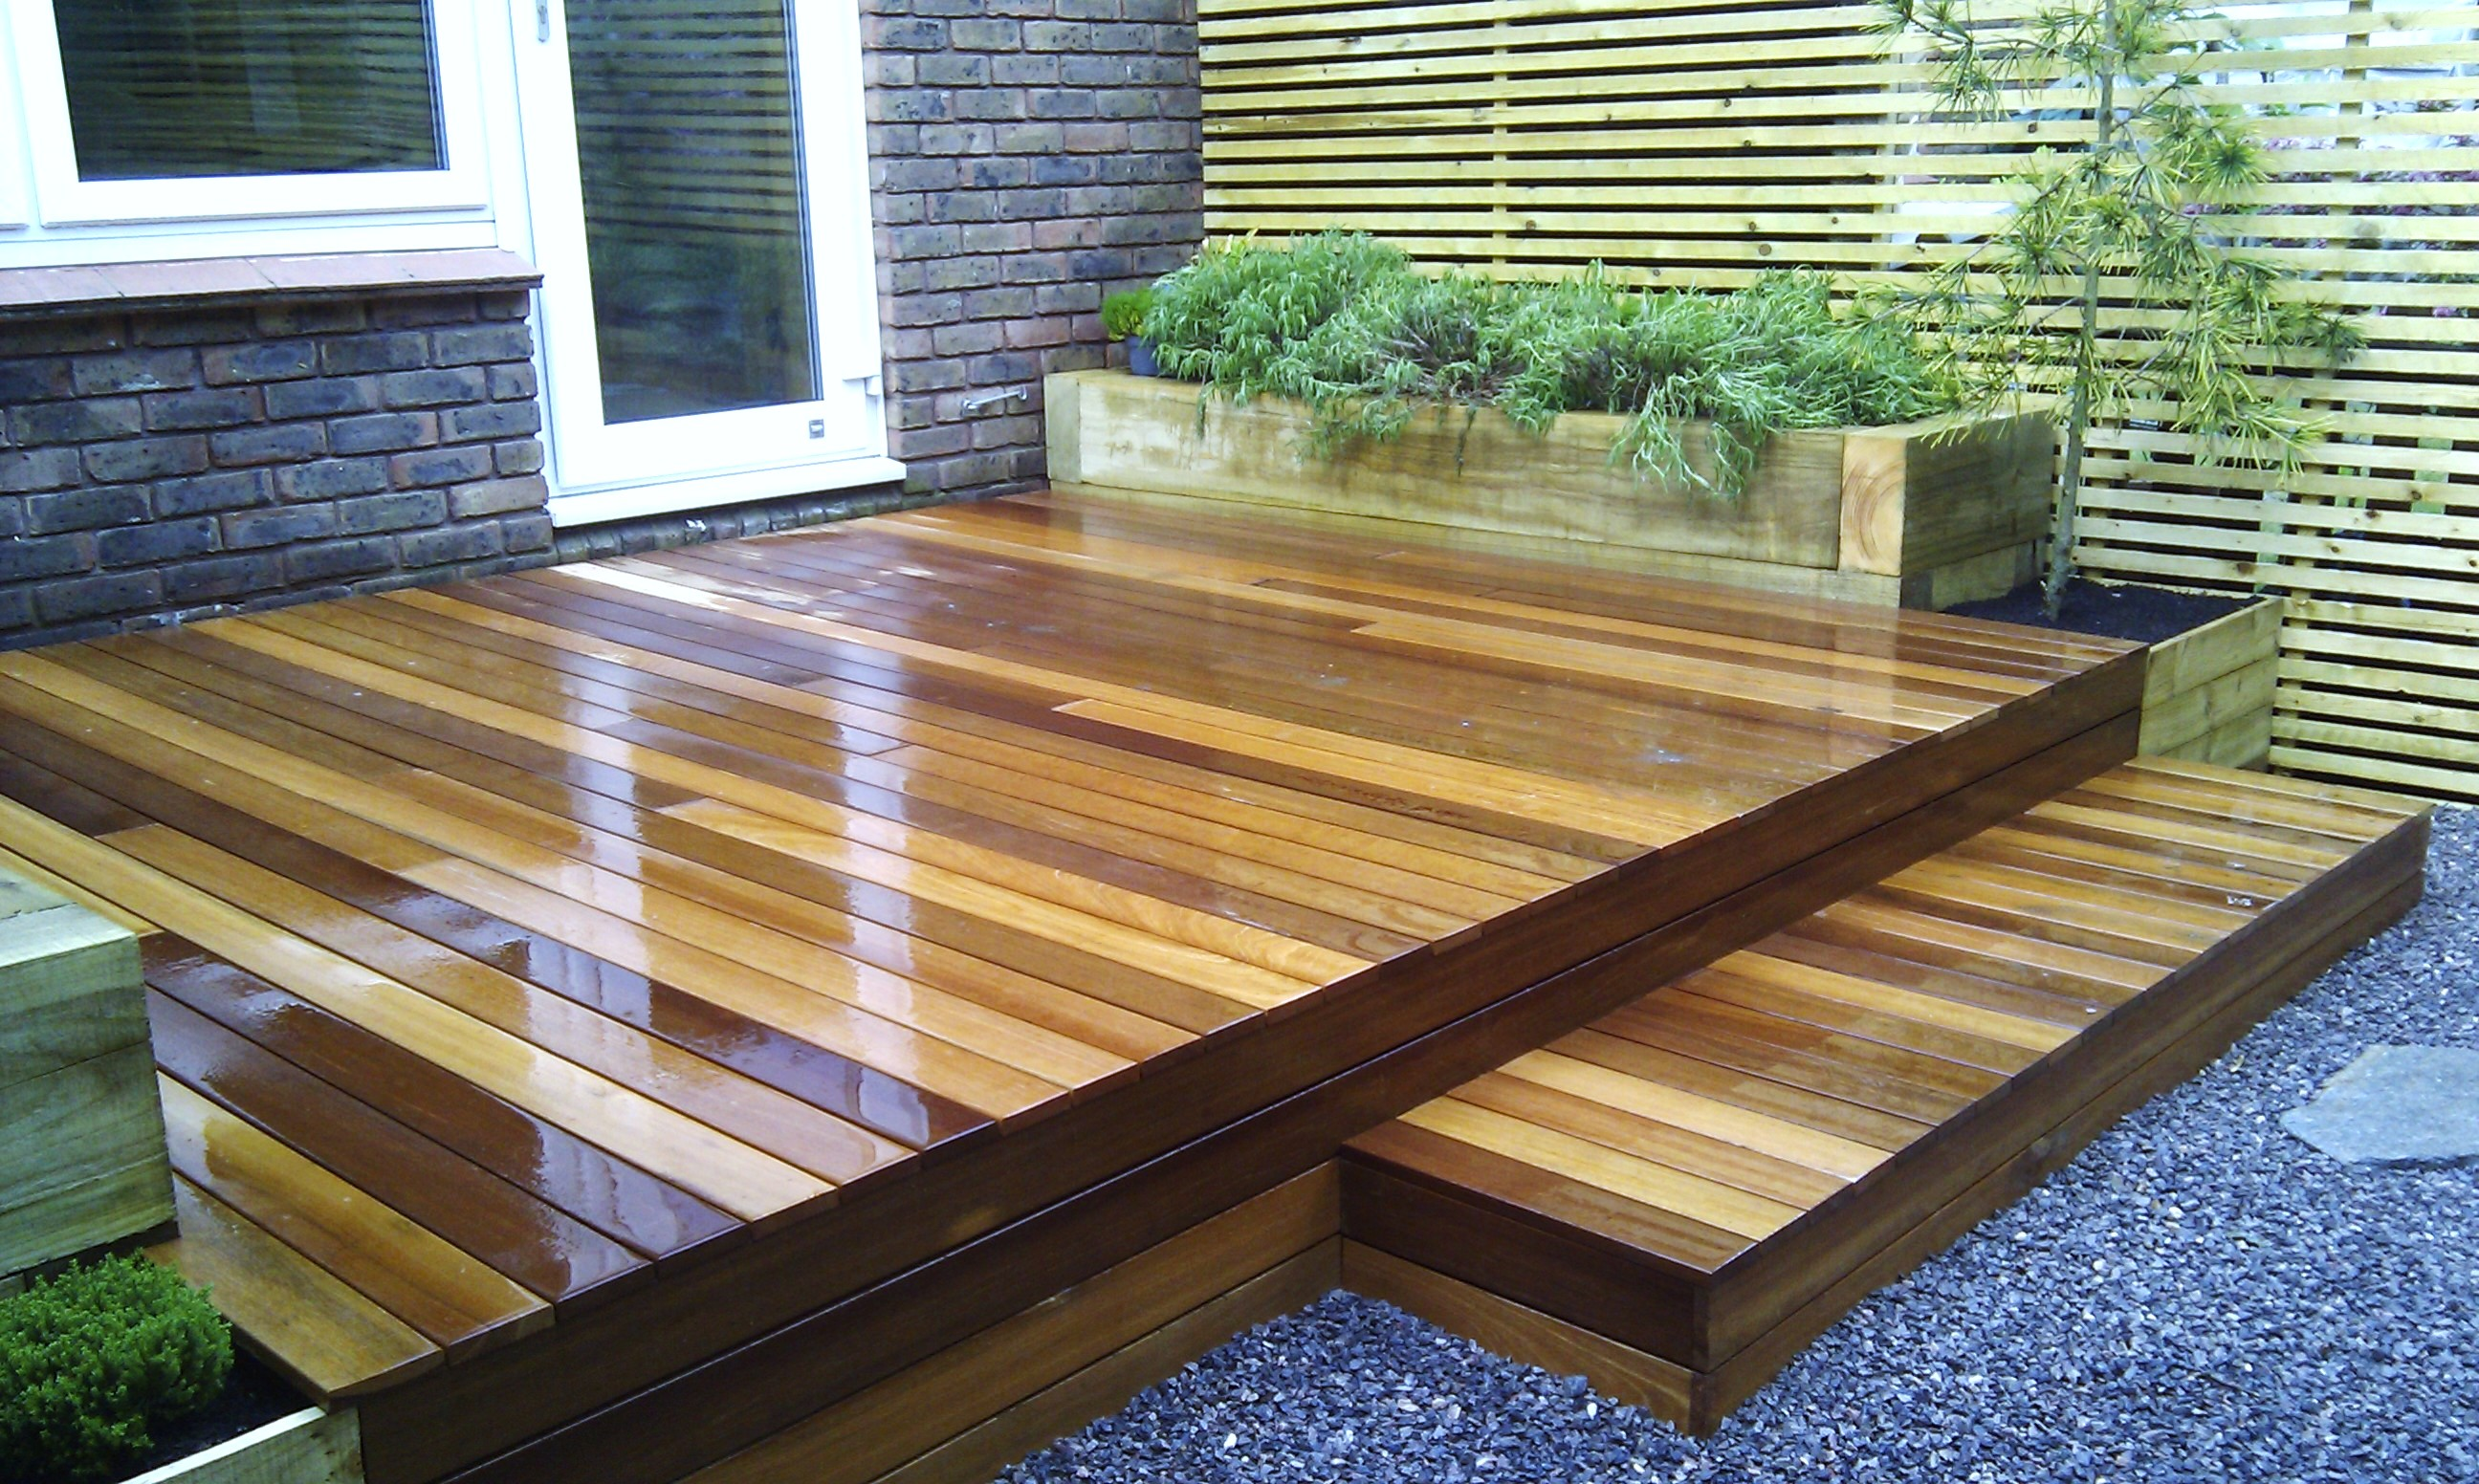 hardwood decking minimalist limestone chippings privacy screen south east london (11)